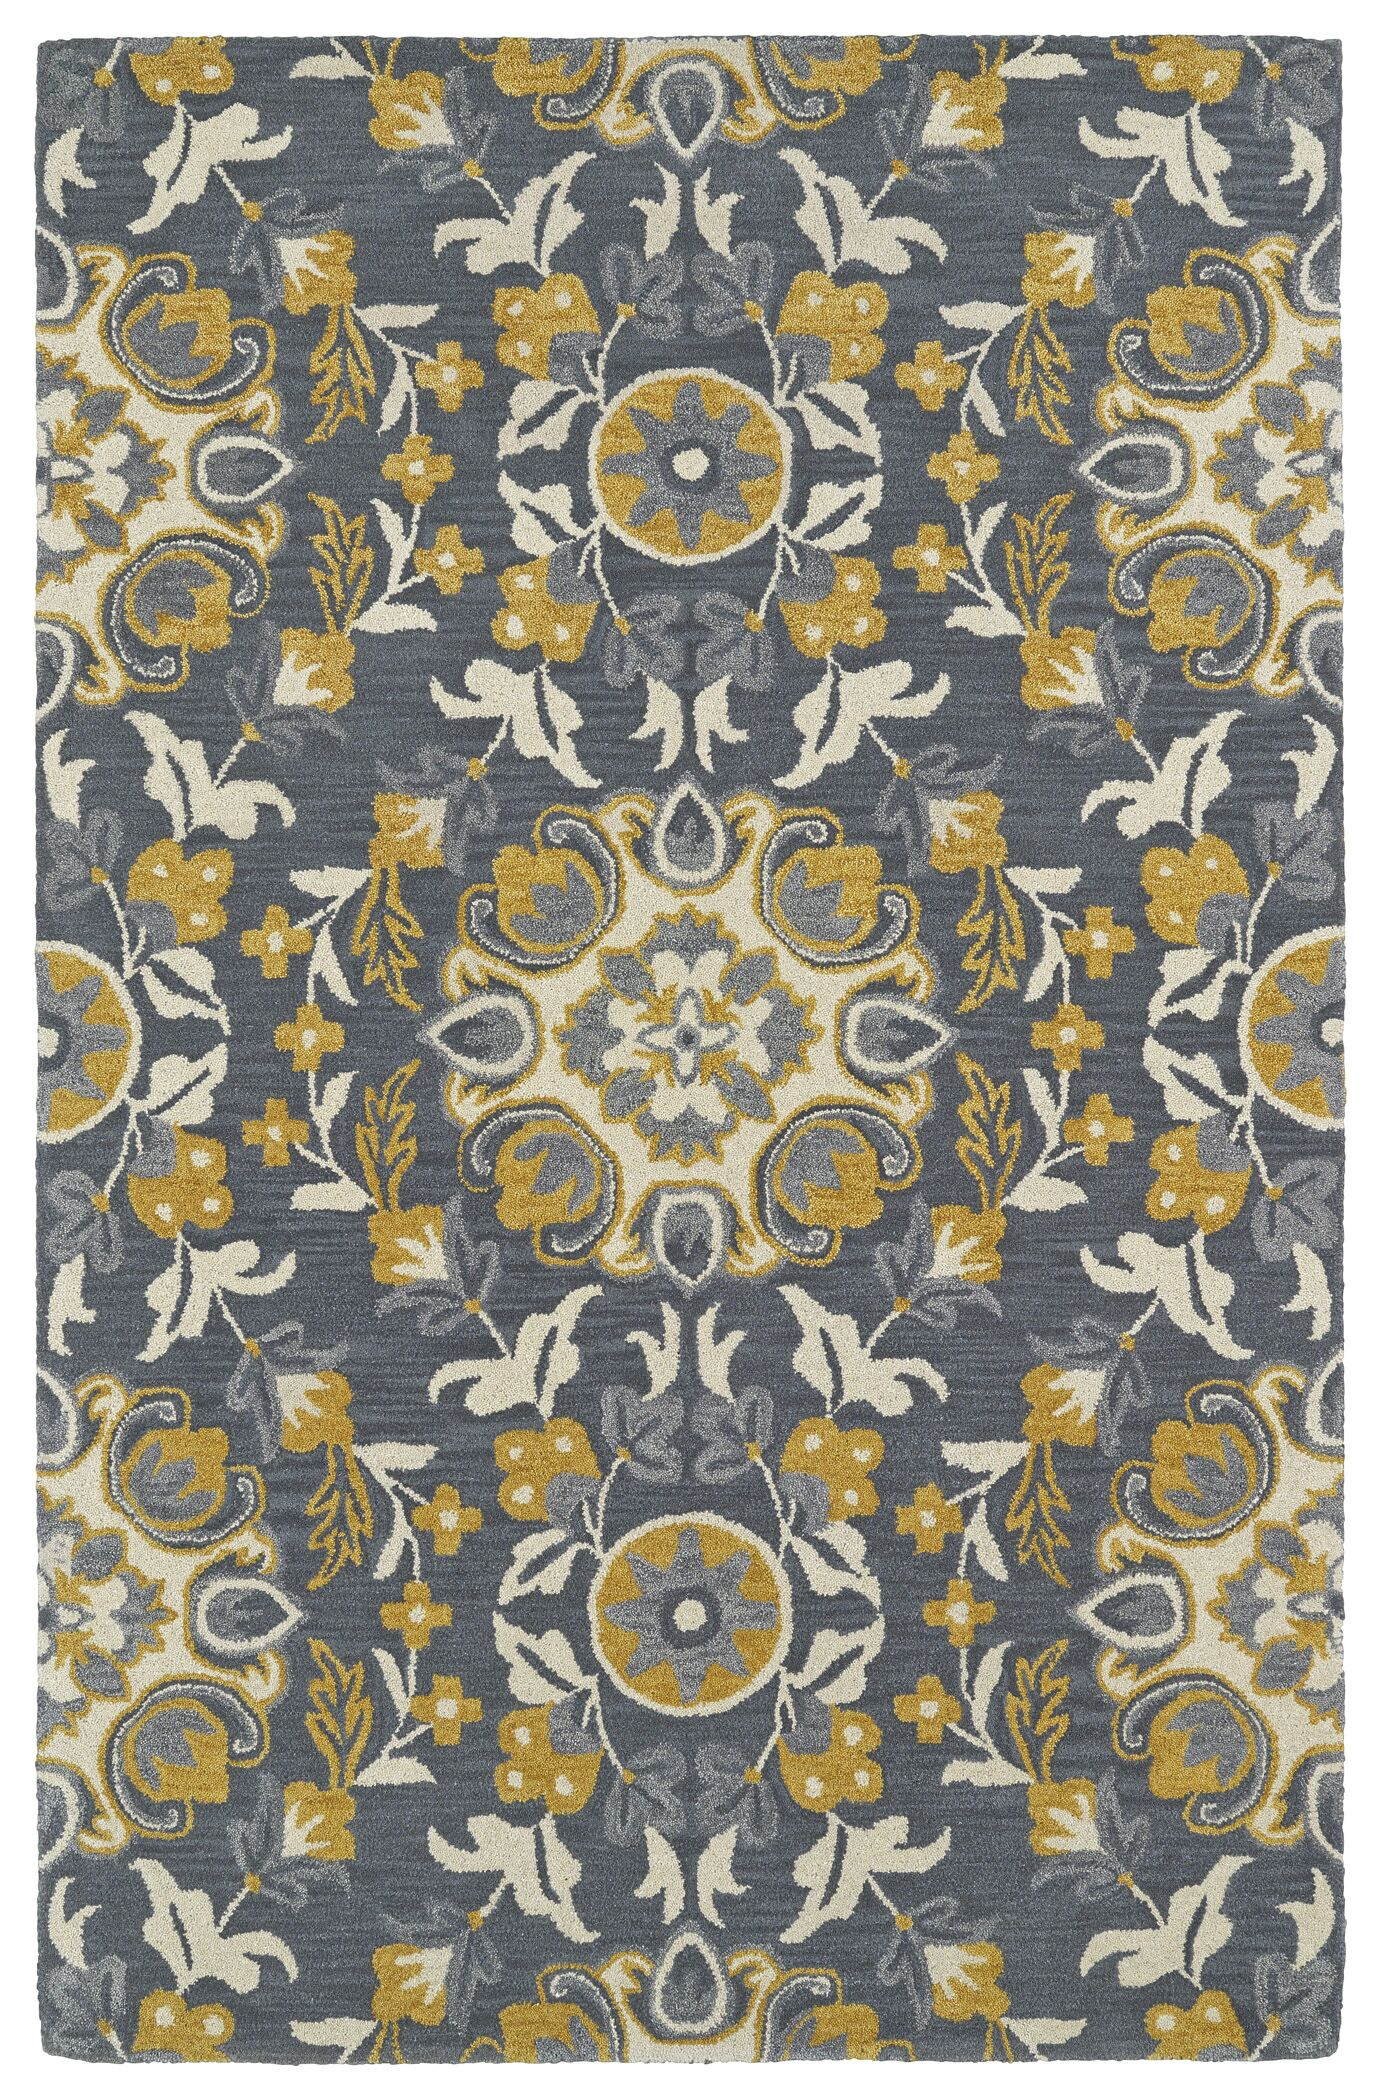 Tunstall Hand-Tufted Wool Gray Area Rug Rug Size: Rectangle 5' x 8'